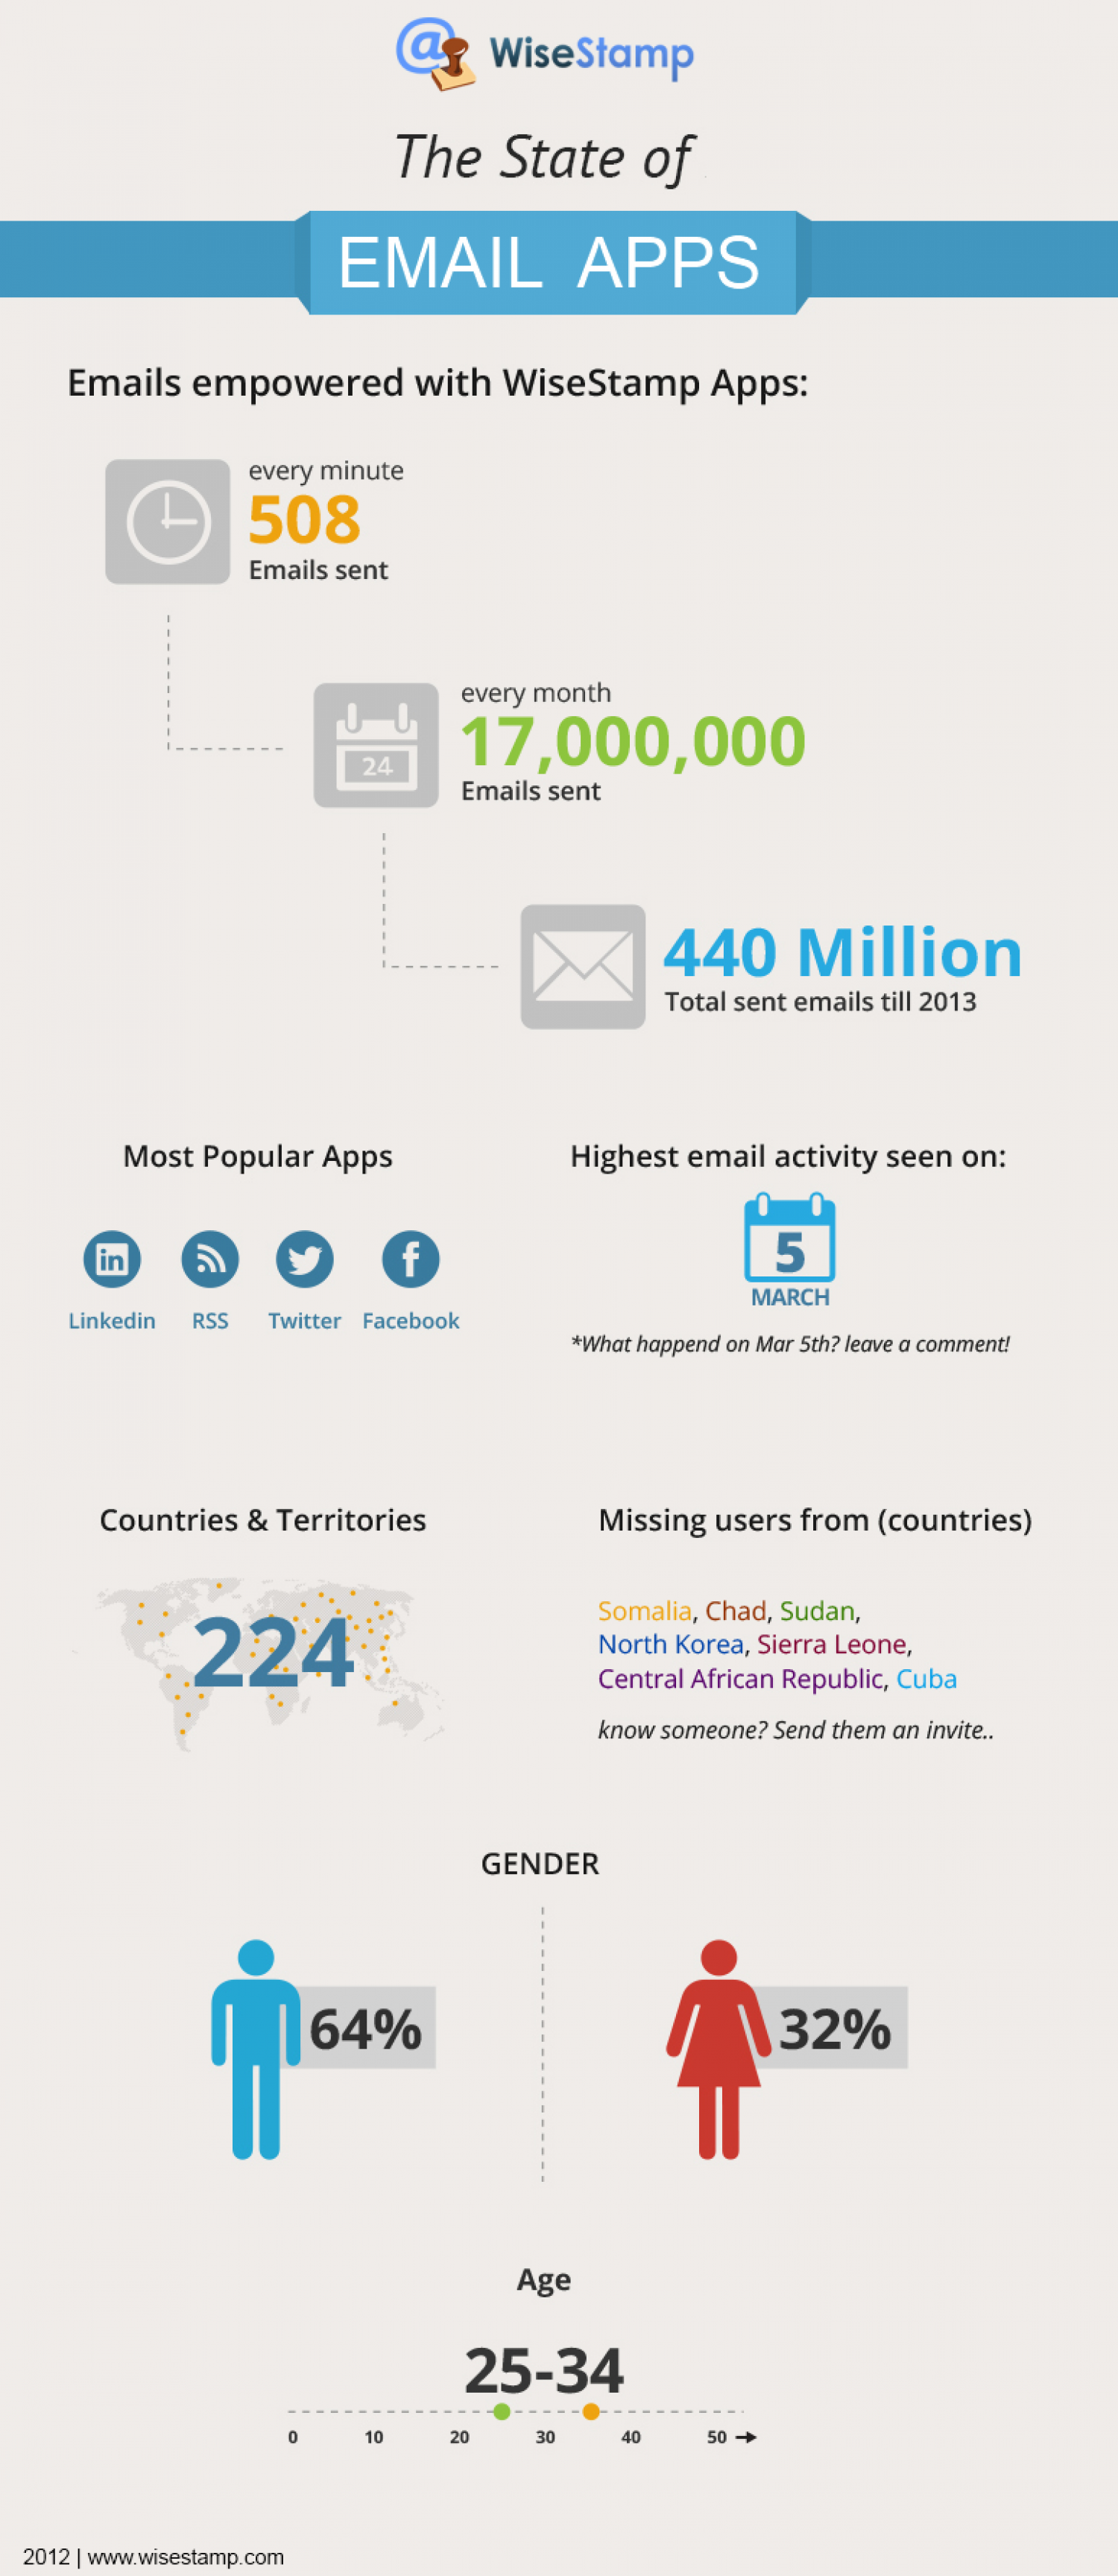 The State Of Email Apps 2012 Infographic